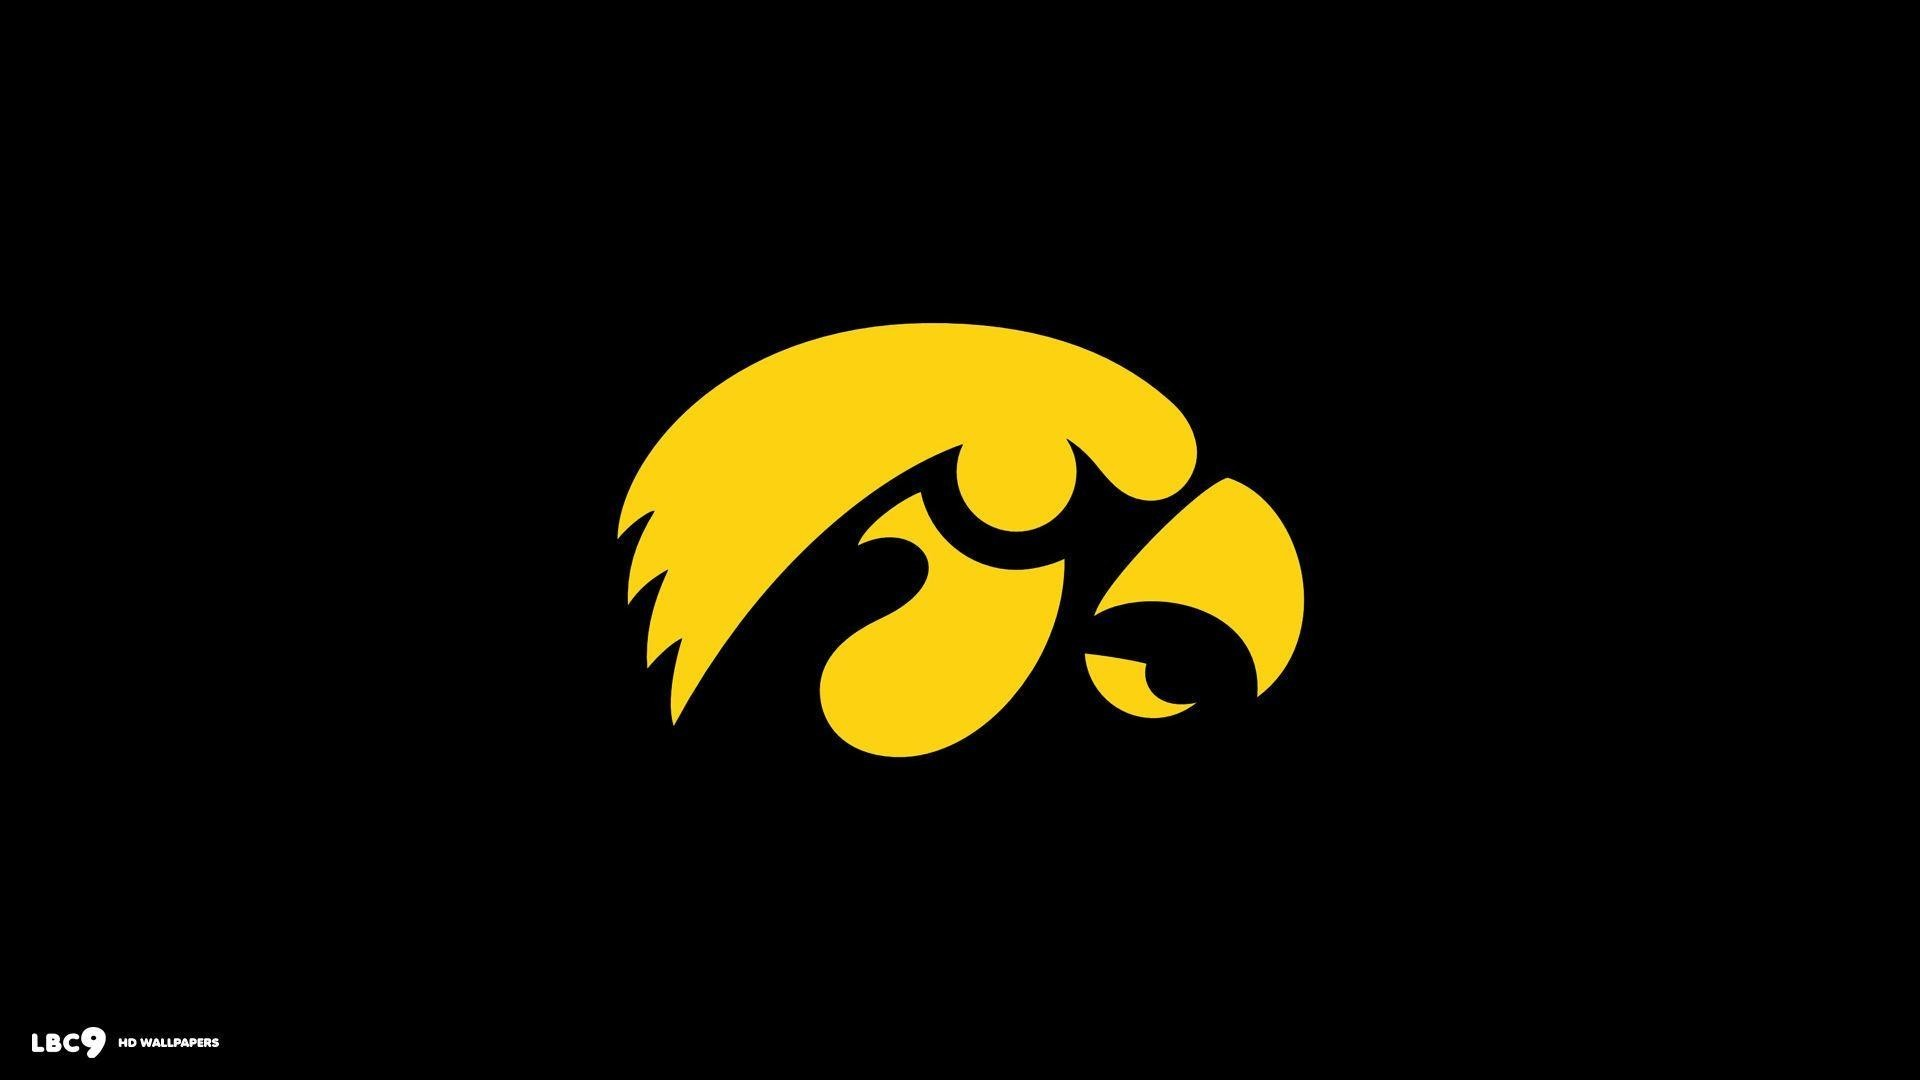 Iowa Hawkeye Background Wallpapers 69 images 1920x1080